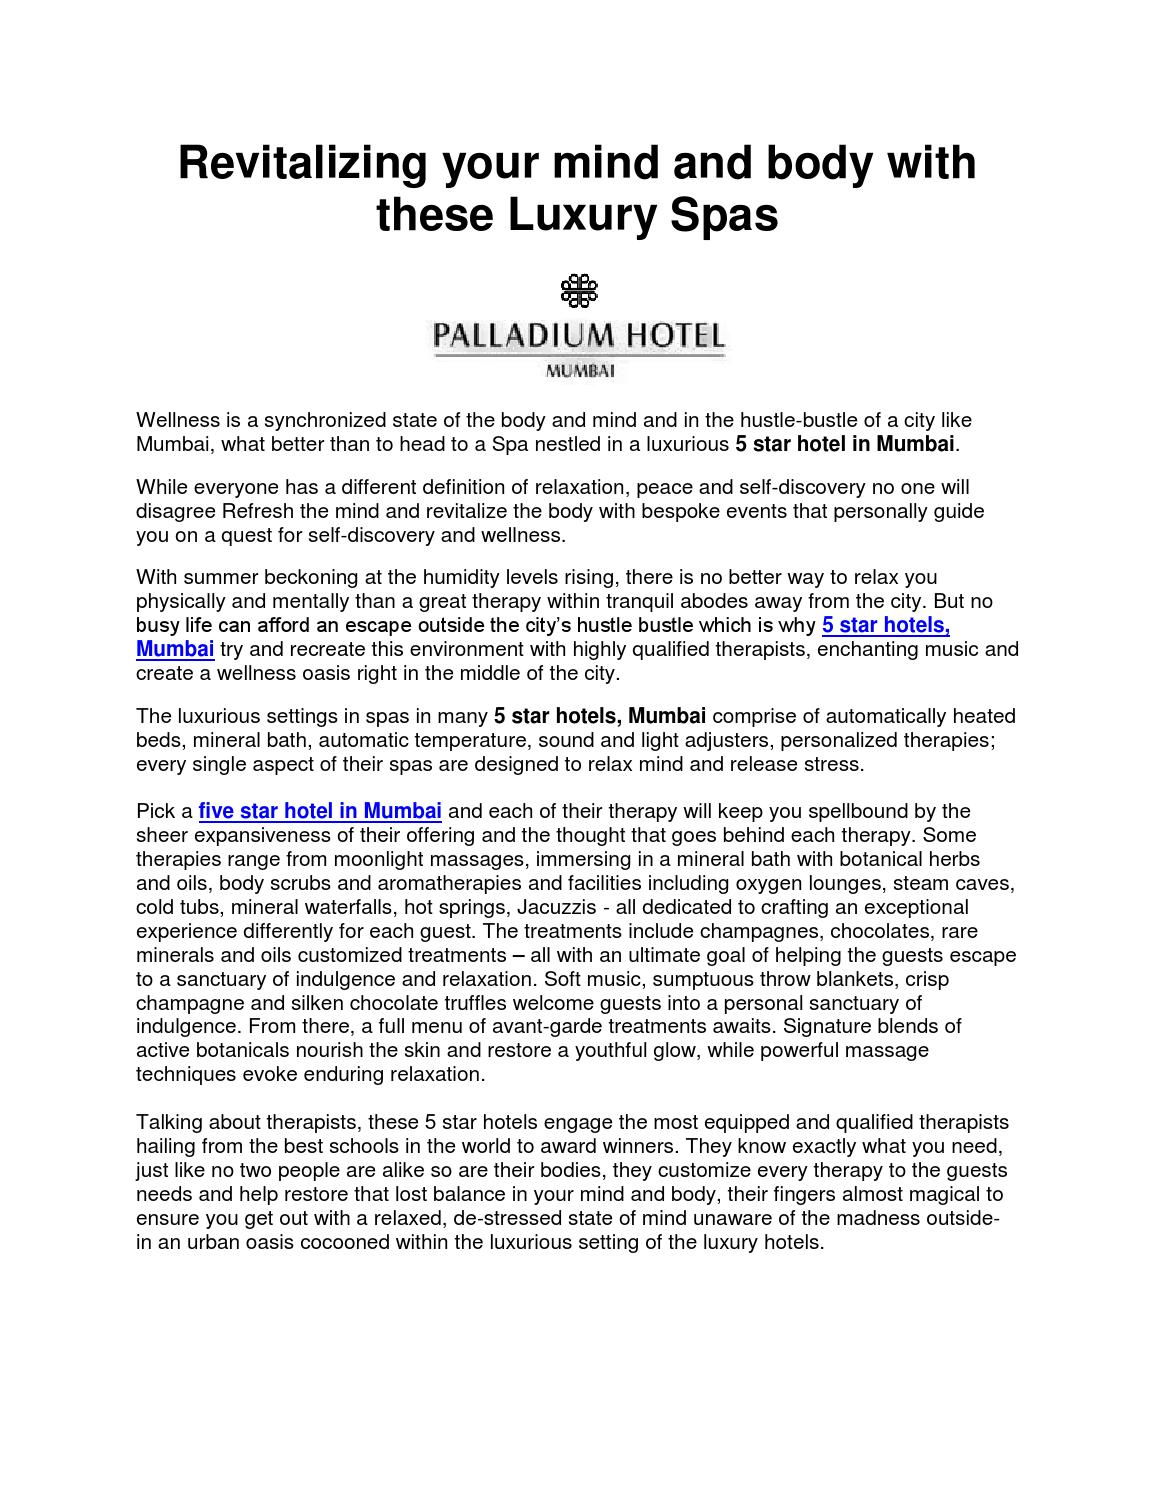 revitalizing your mind and body with these luxury spas by palladium